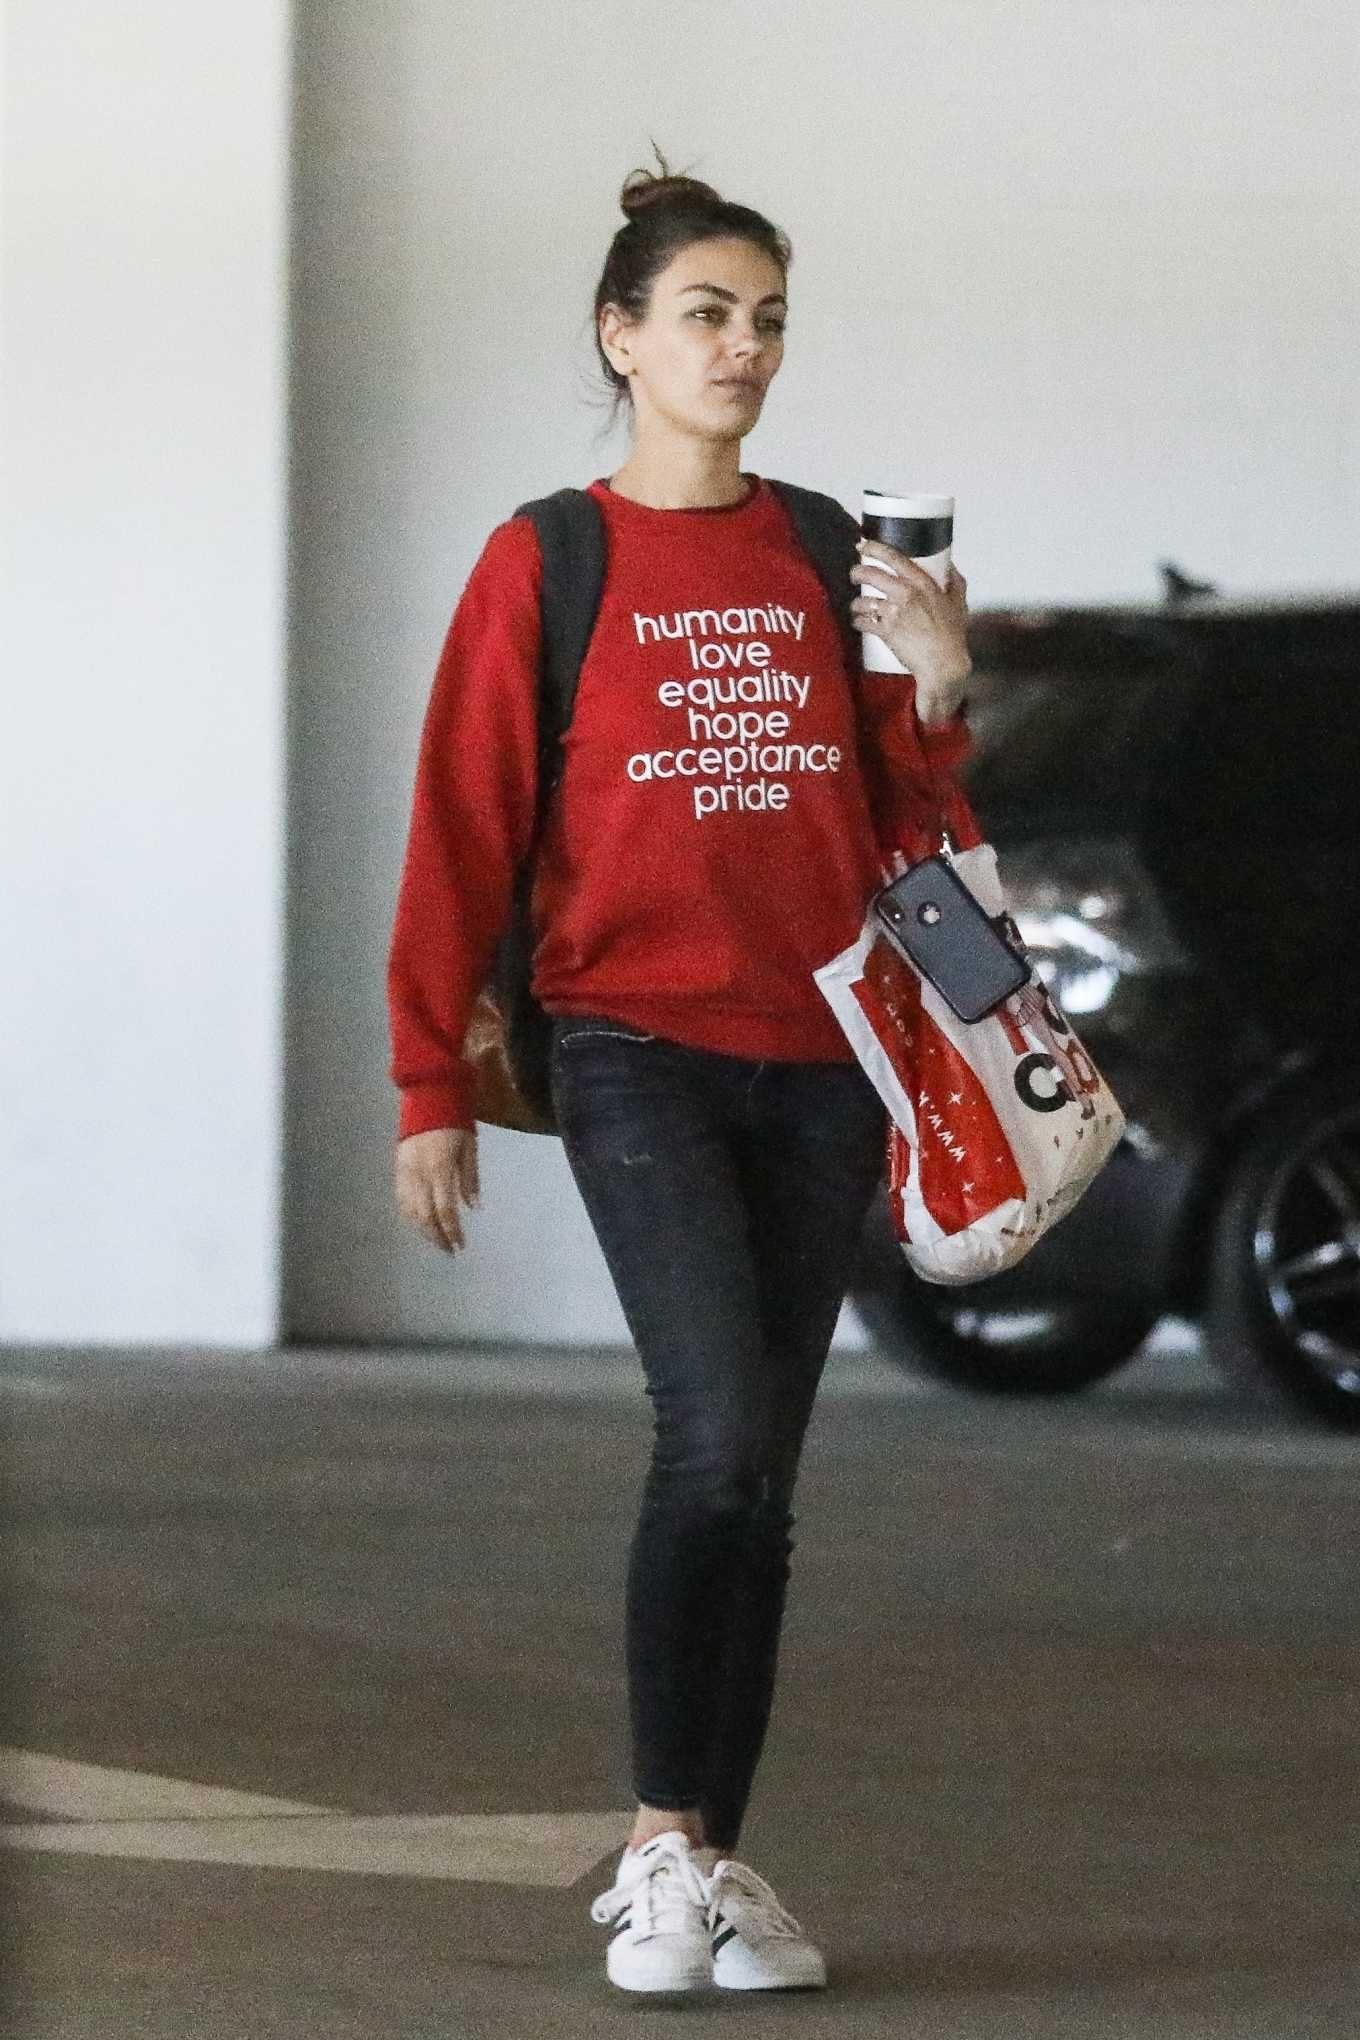 Mila Kunis wearing a Oversized slogan printed red sweatshirt with a woolen material, extra long sleeves, a crew neck and ribbed trim hem